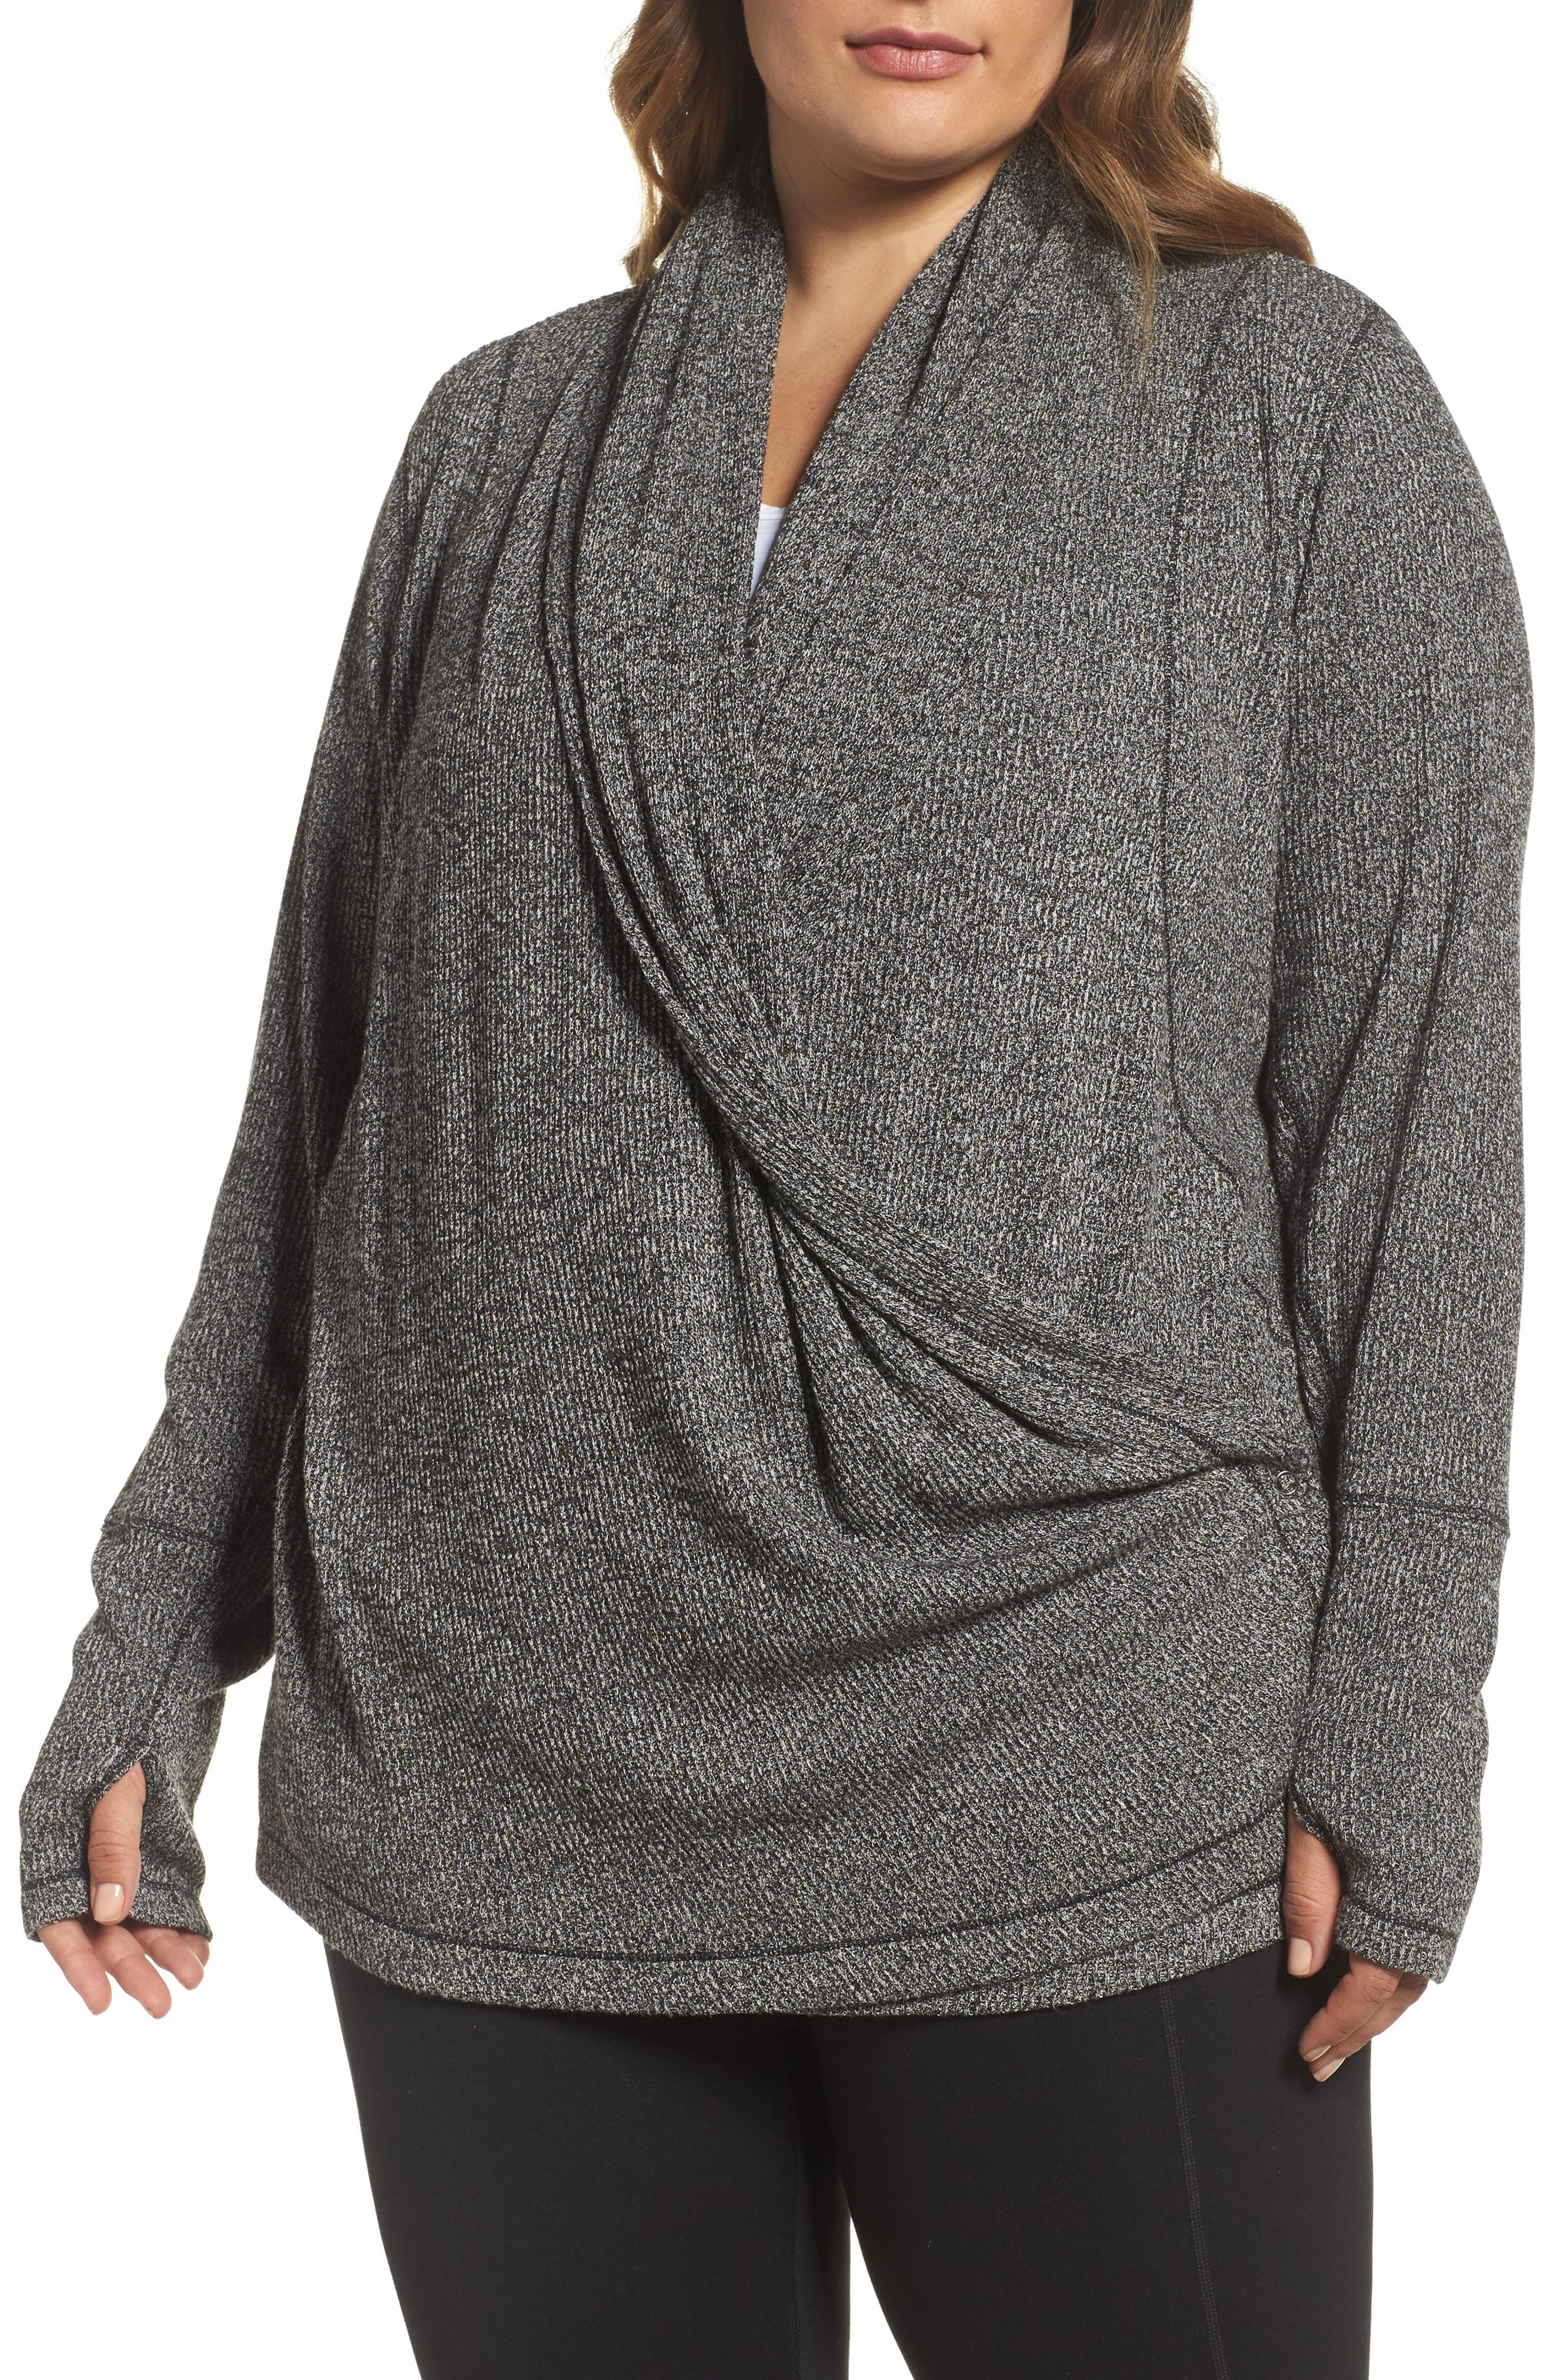 Zella Enlighten Me Ribbed Cardigan (Plus Size)